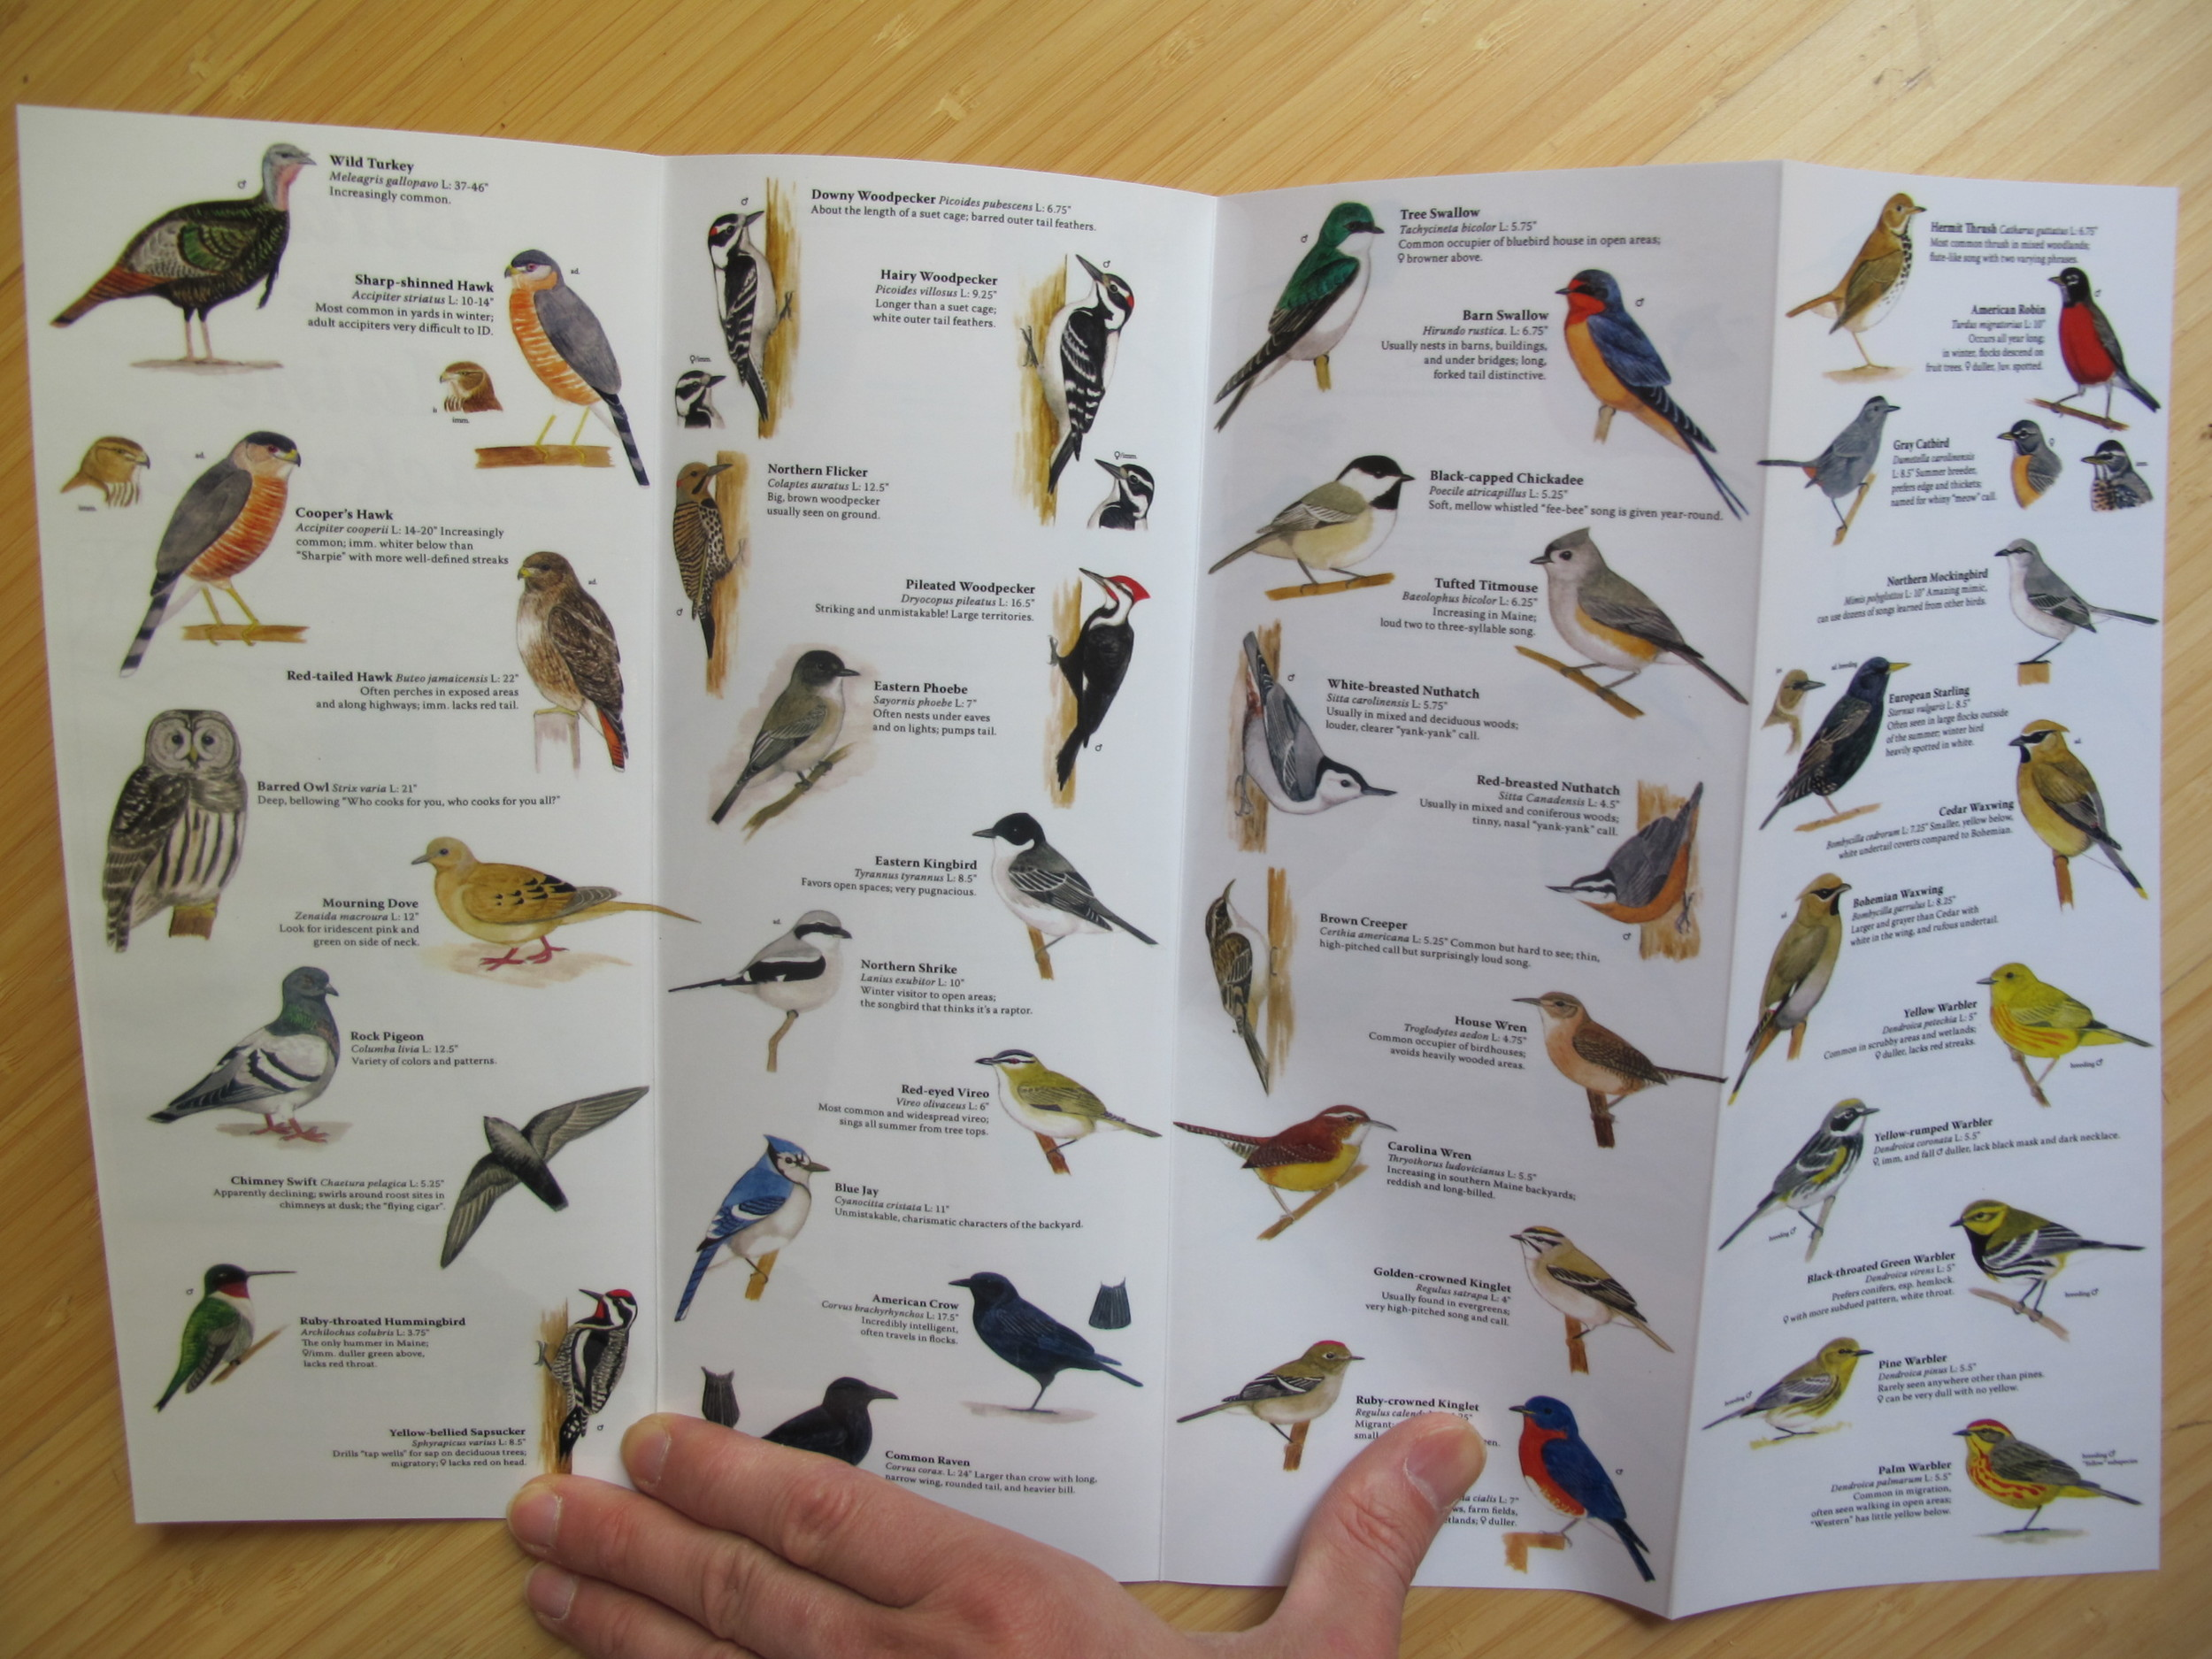 Luke illustrated this Maine bird guide at age 16.